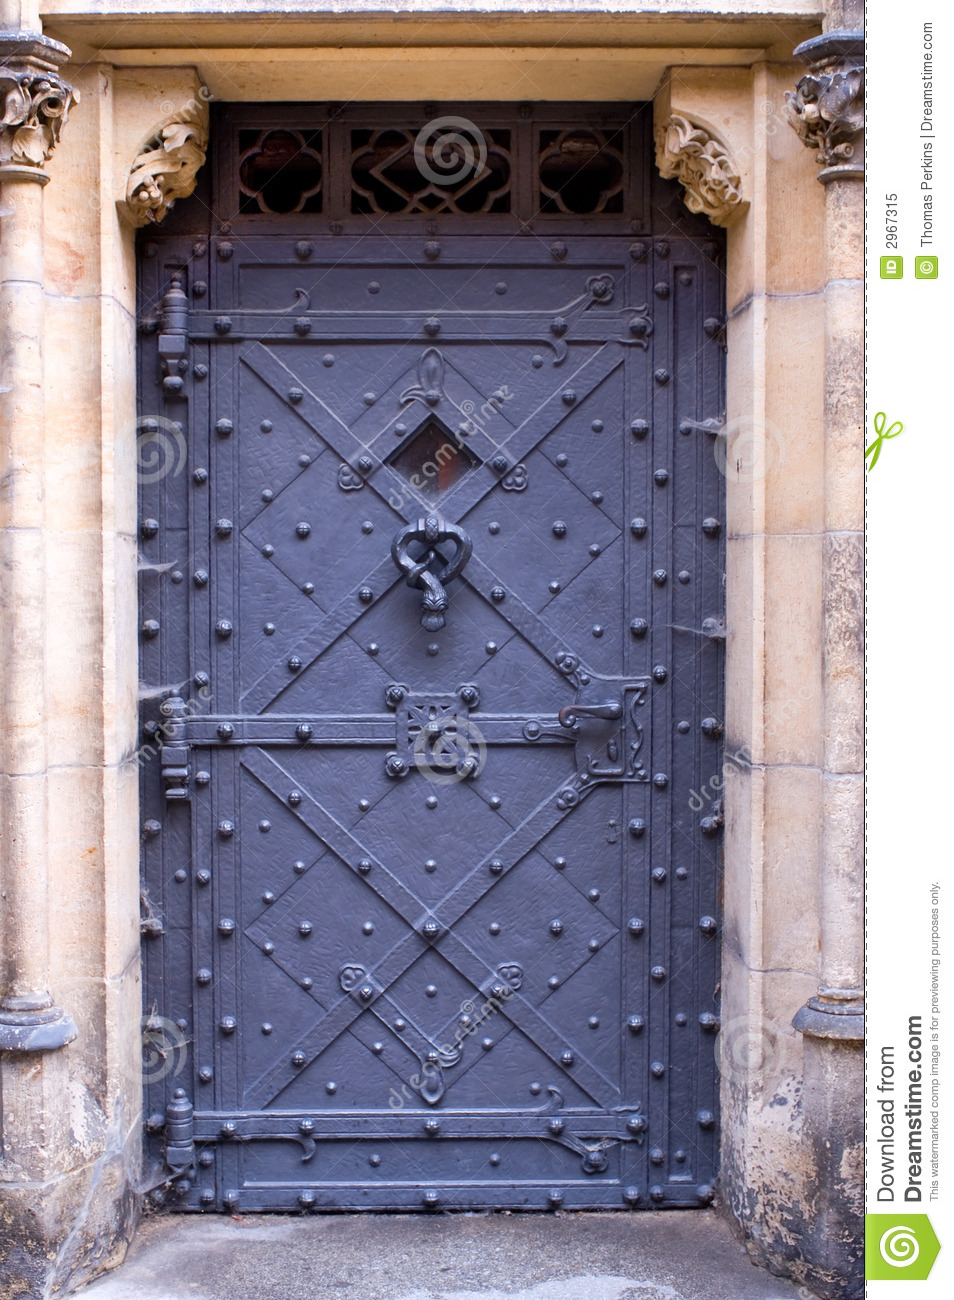 Prague castle door royalty free stock photo image 2967315 for Door z prague